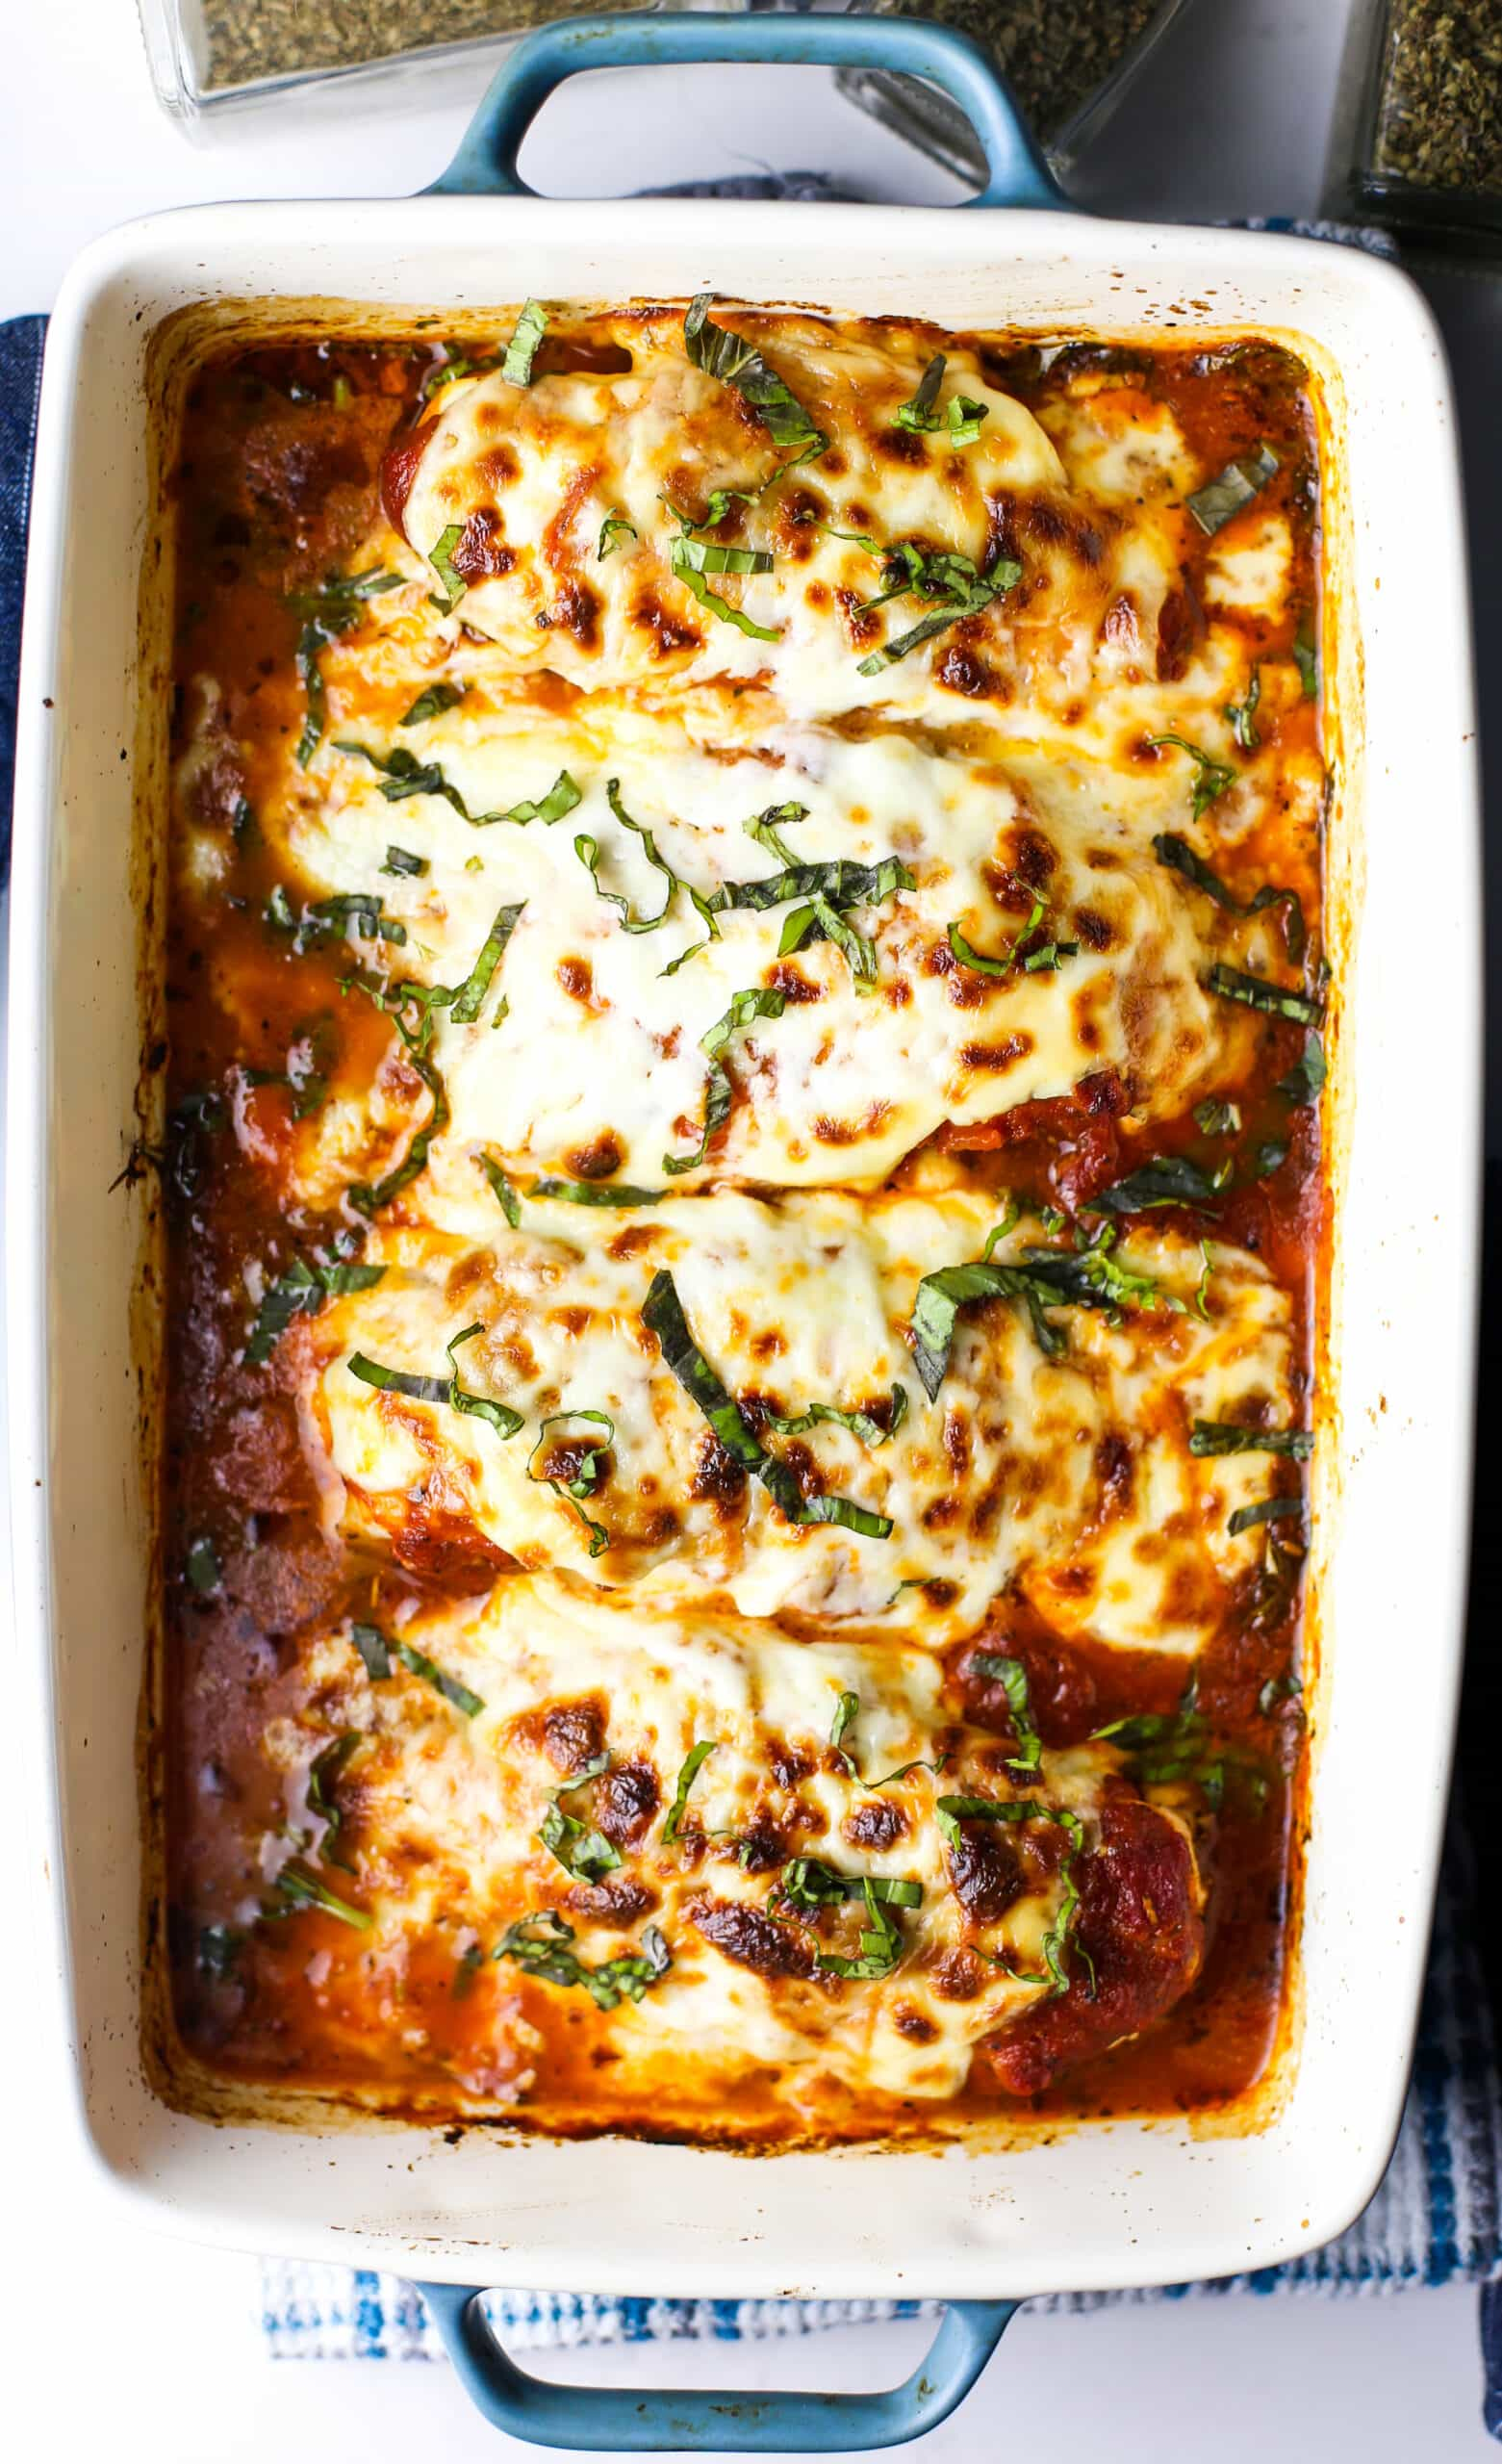 Baked mozzarella chicken with marinara sauce in a casserole dish.